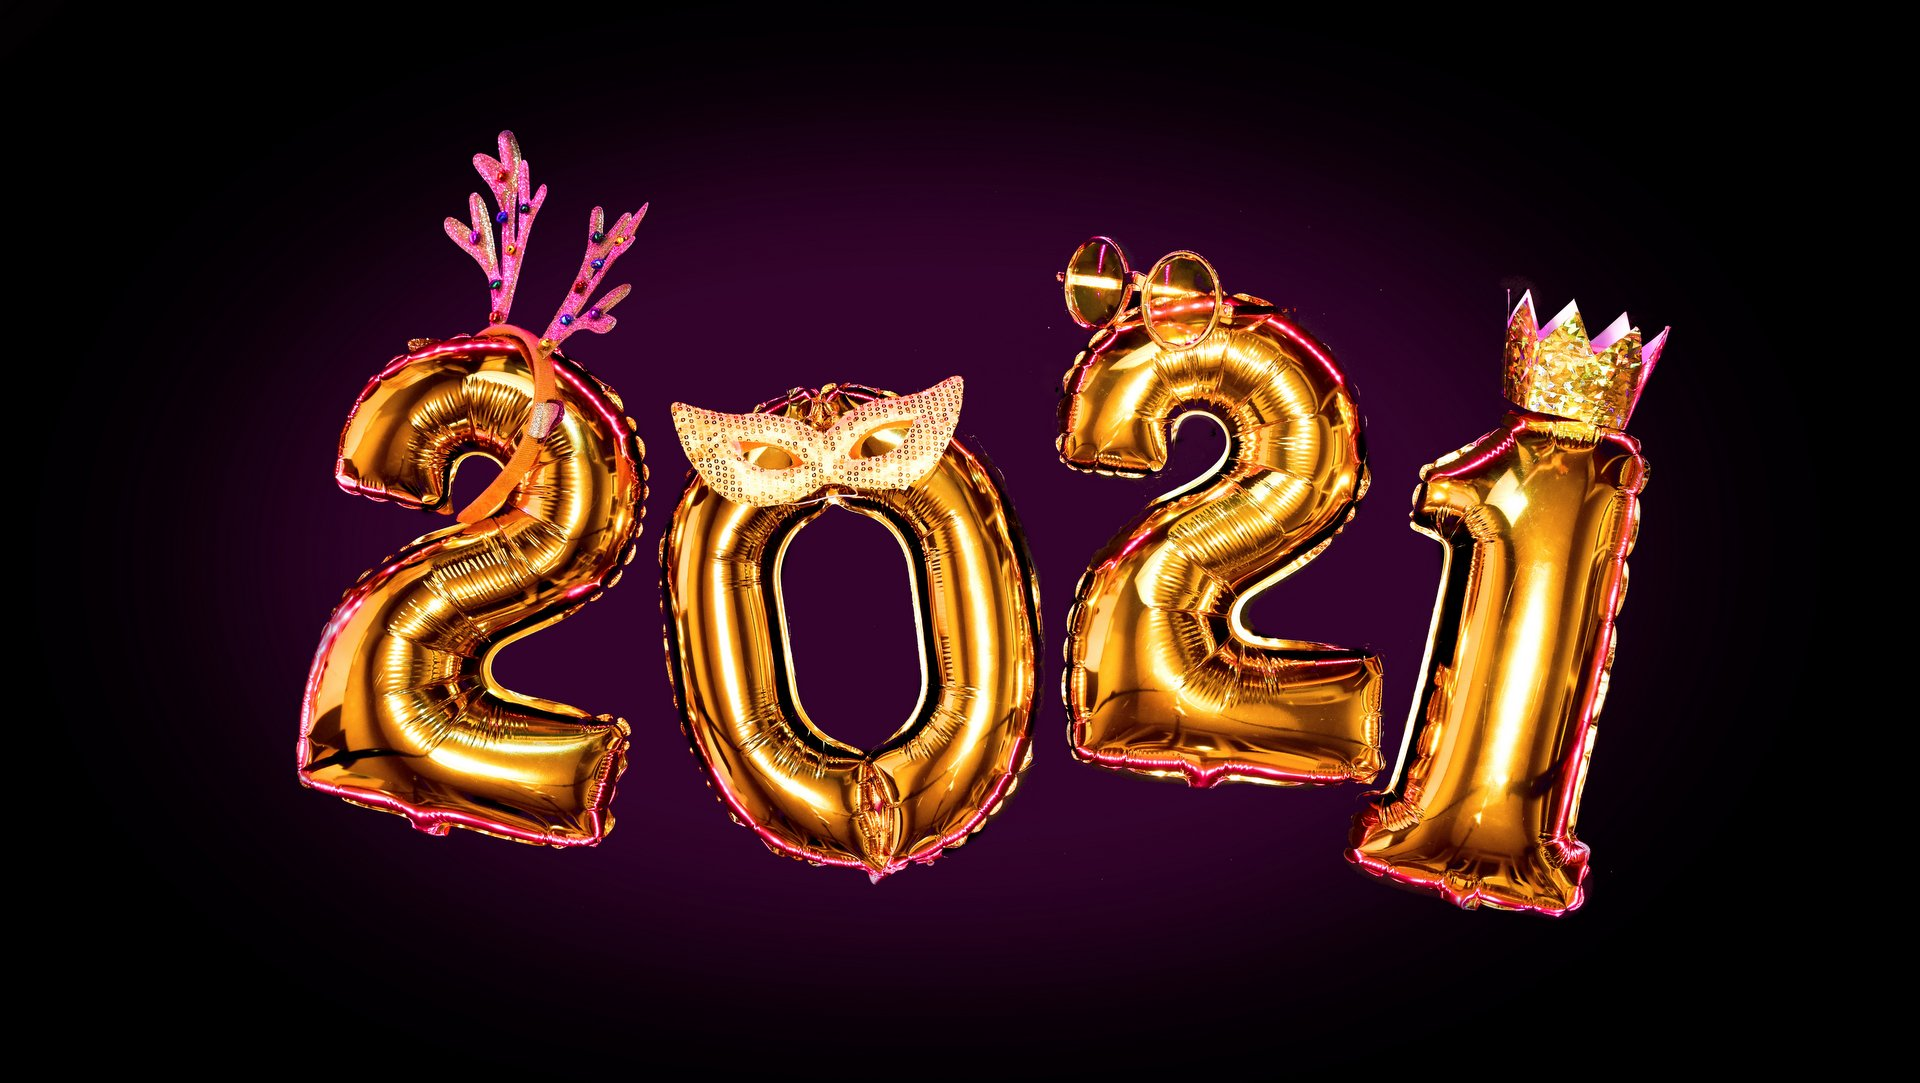 Gold 2021 new year background-1920x1080